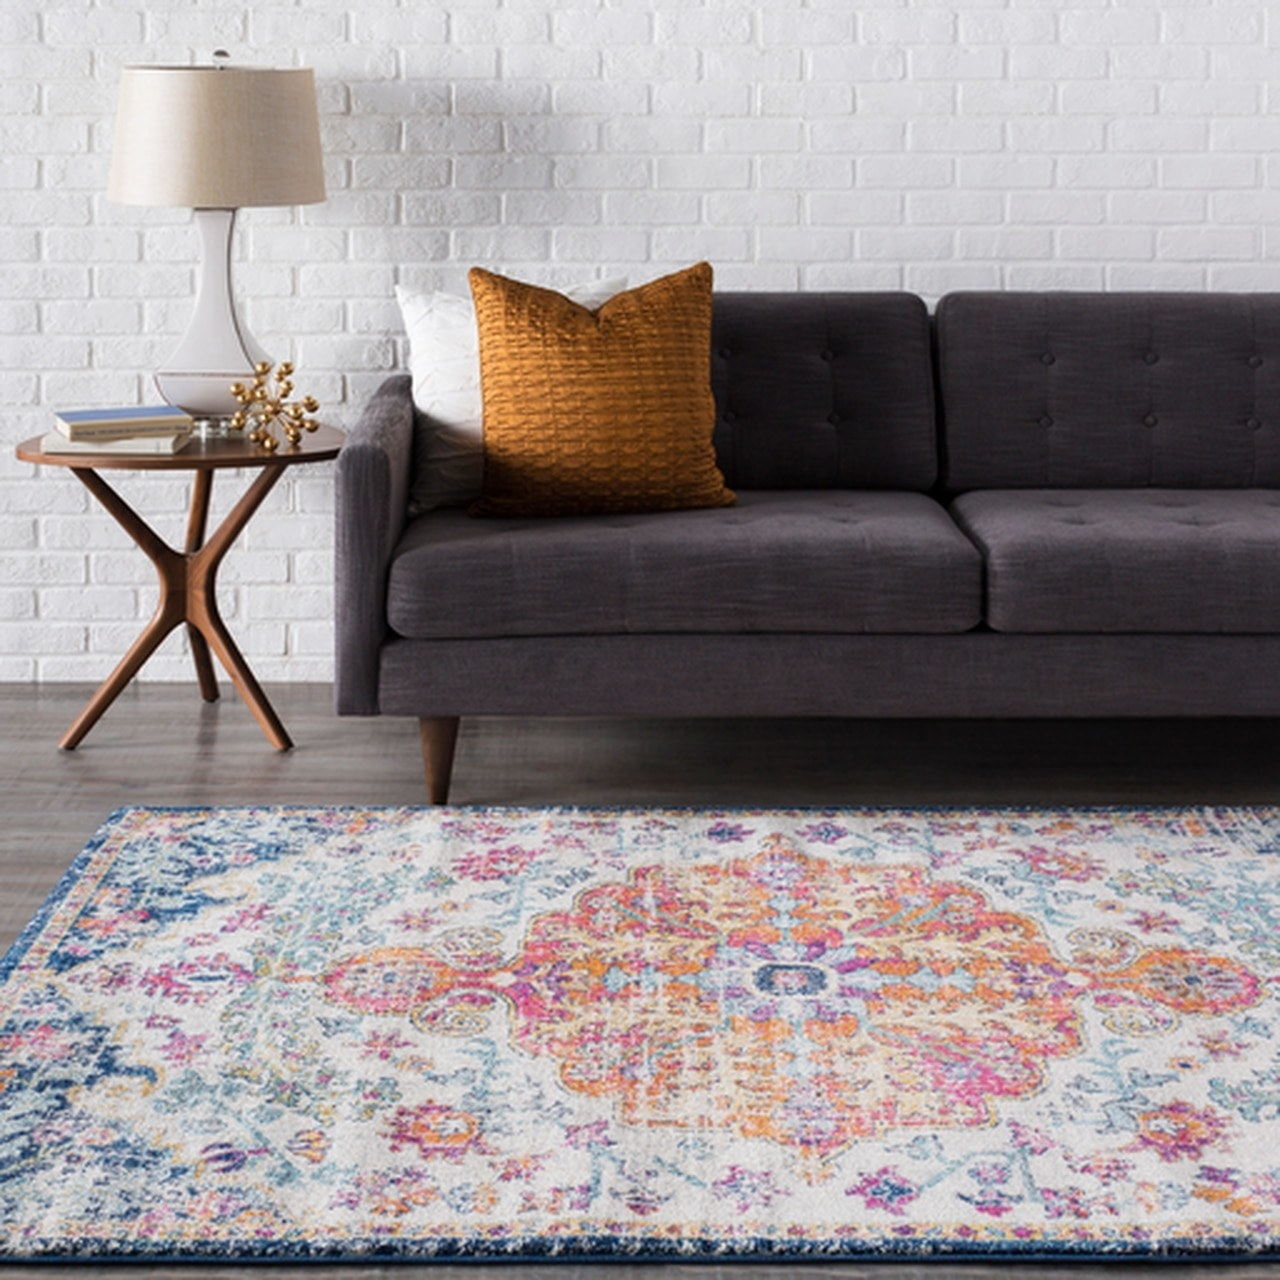 an area rug with a design including light blue, navy blue, white, pink, orange and yellow